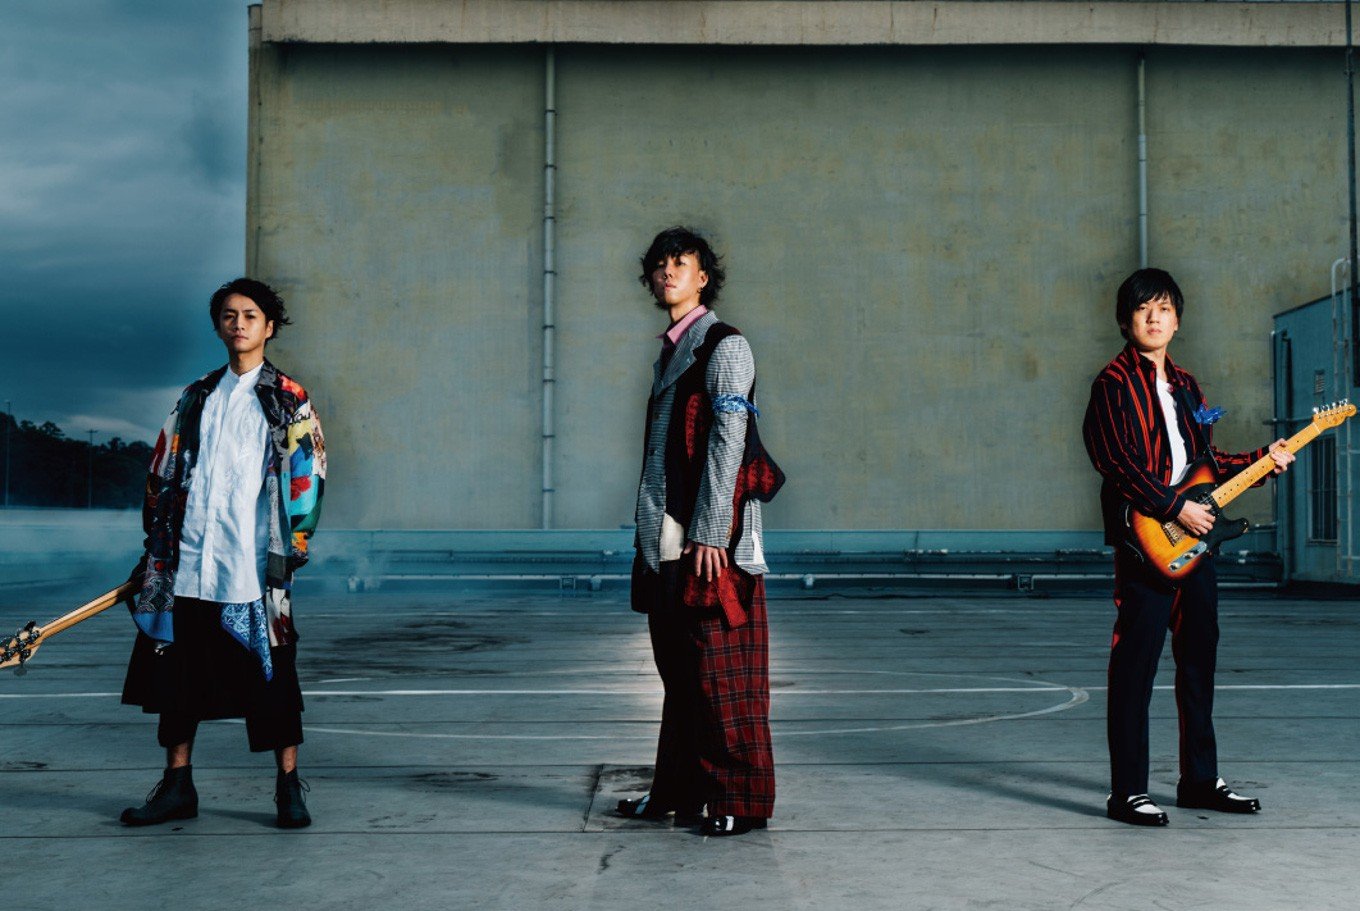 Japanese band Radwimps to rock Singapore in August